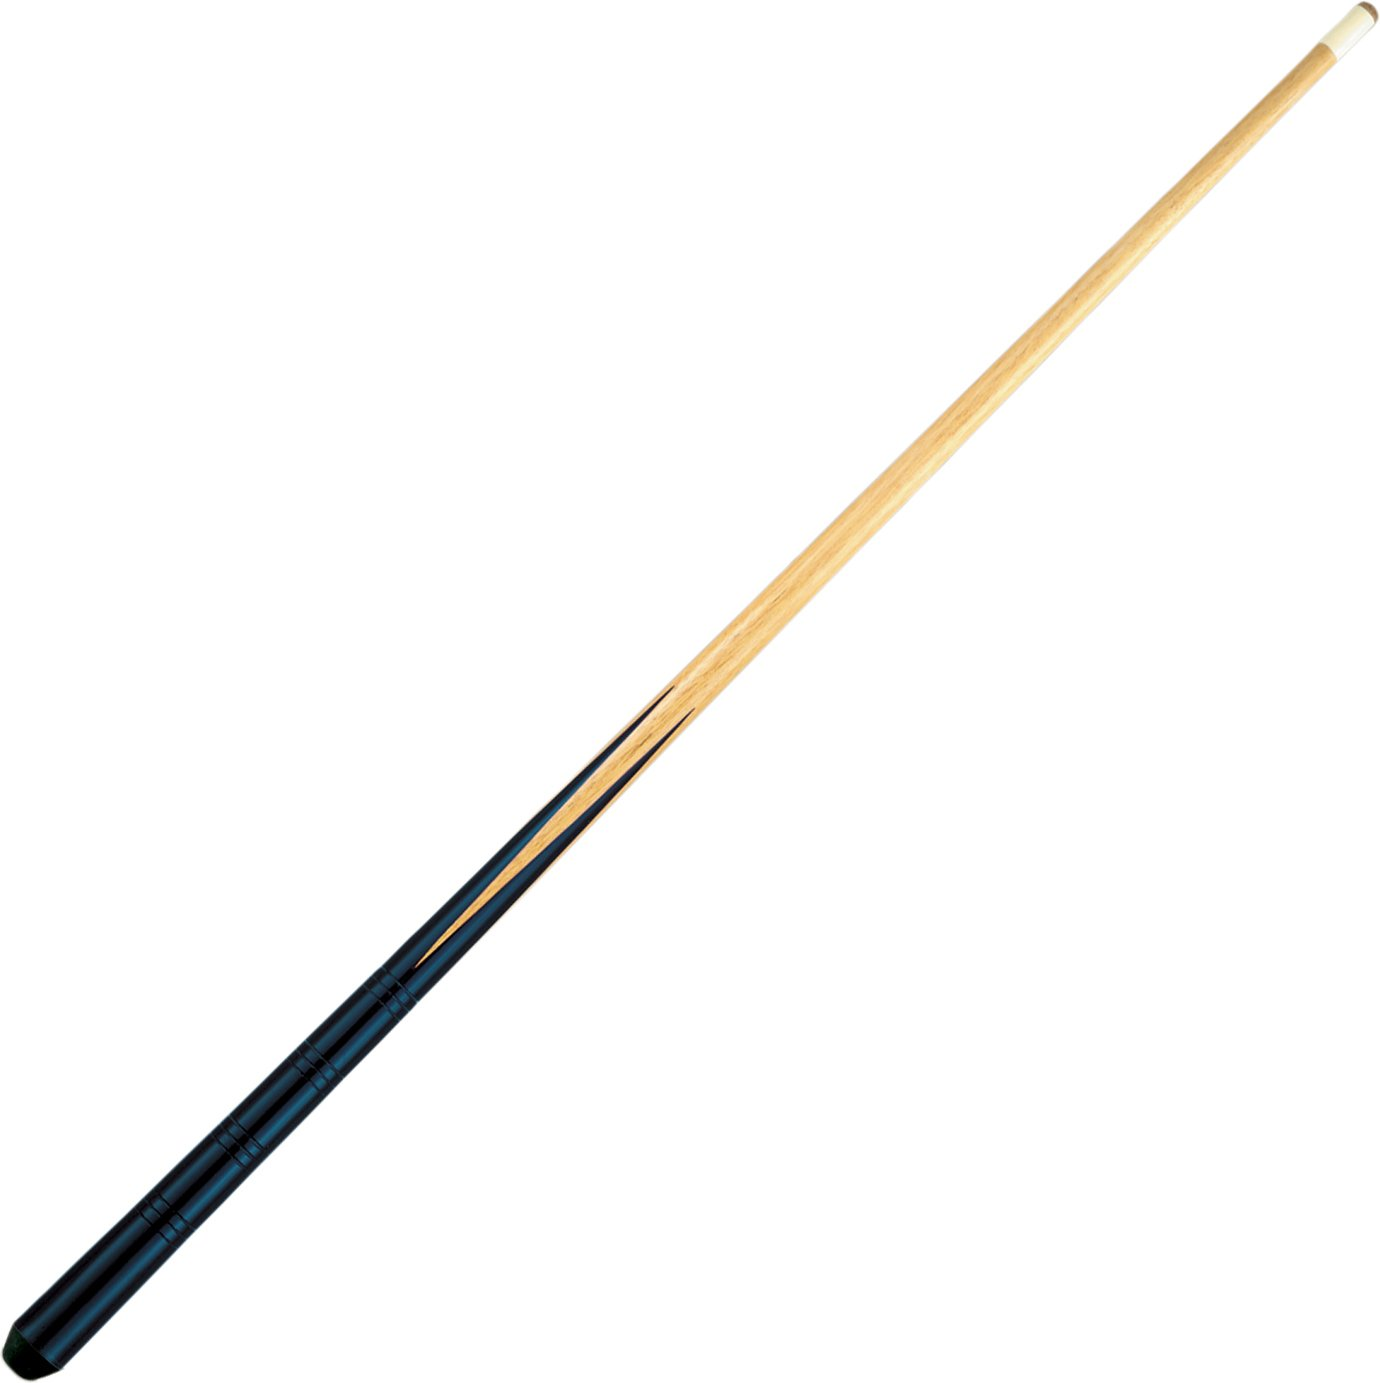 The Best Pool Cues 4